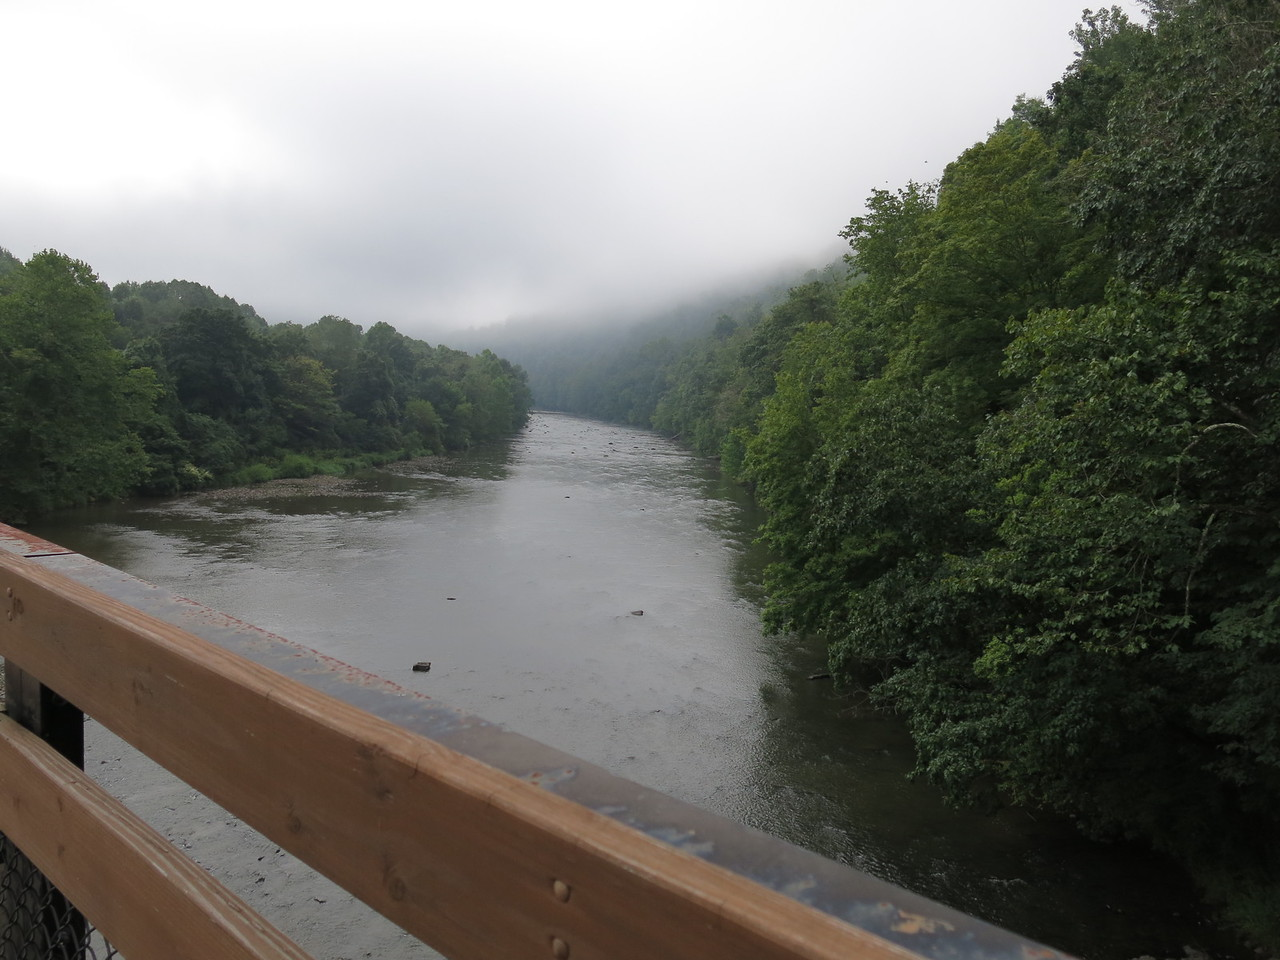 Upstream view of the Casselman River from the trail bridge near Confluence